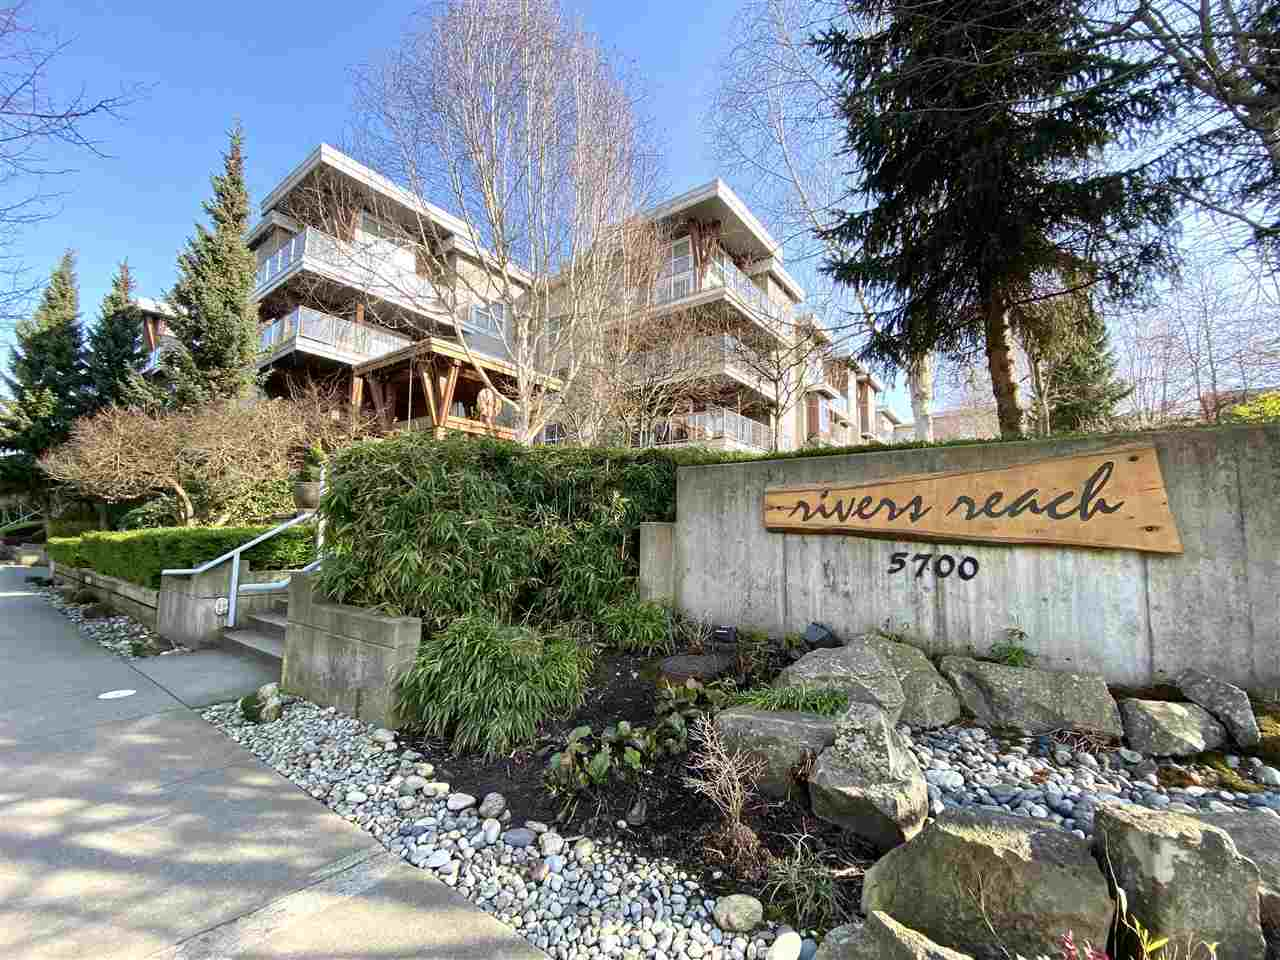 413 5700 ANDREWS ROAD - Steveston South Apartment/Condo for sale, 2 Bedrooms (R2559885)